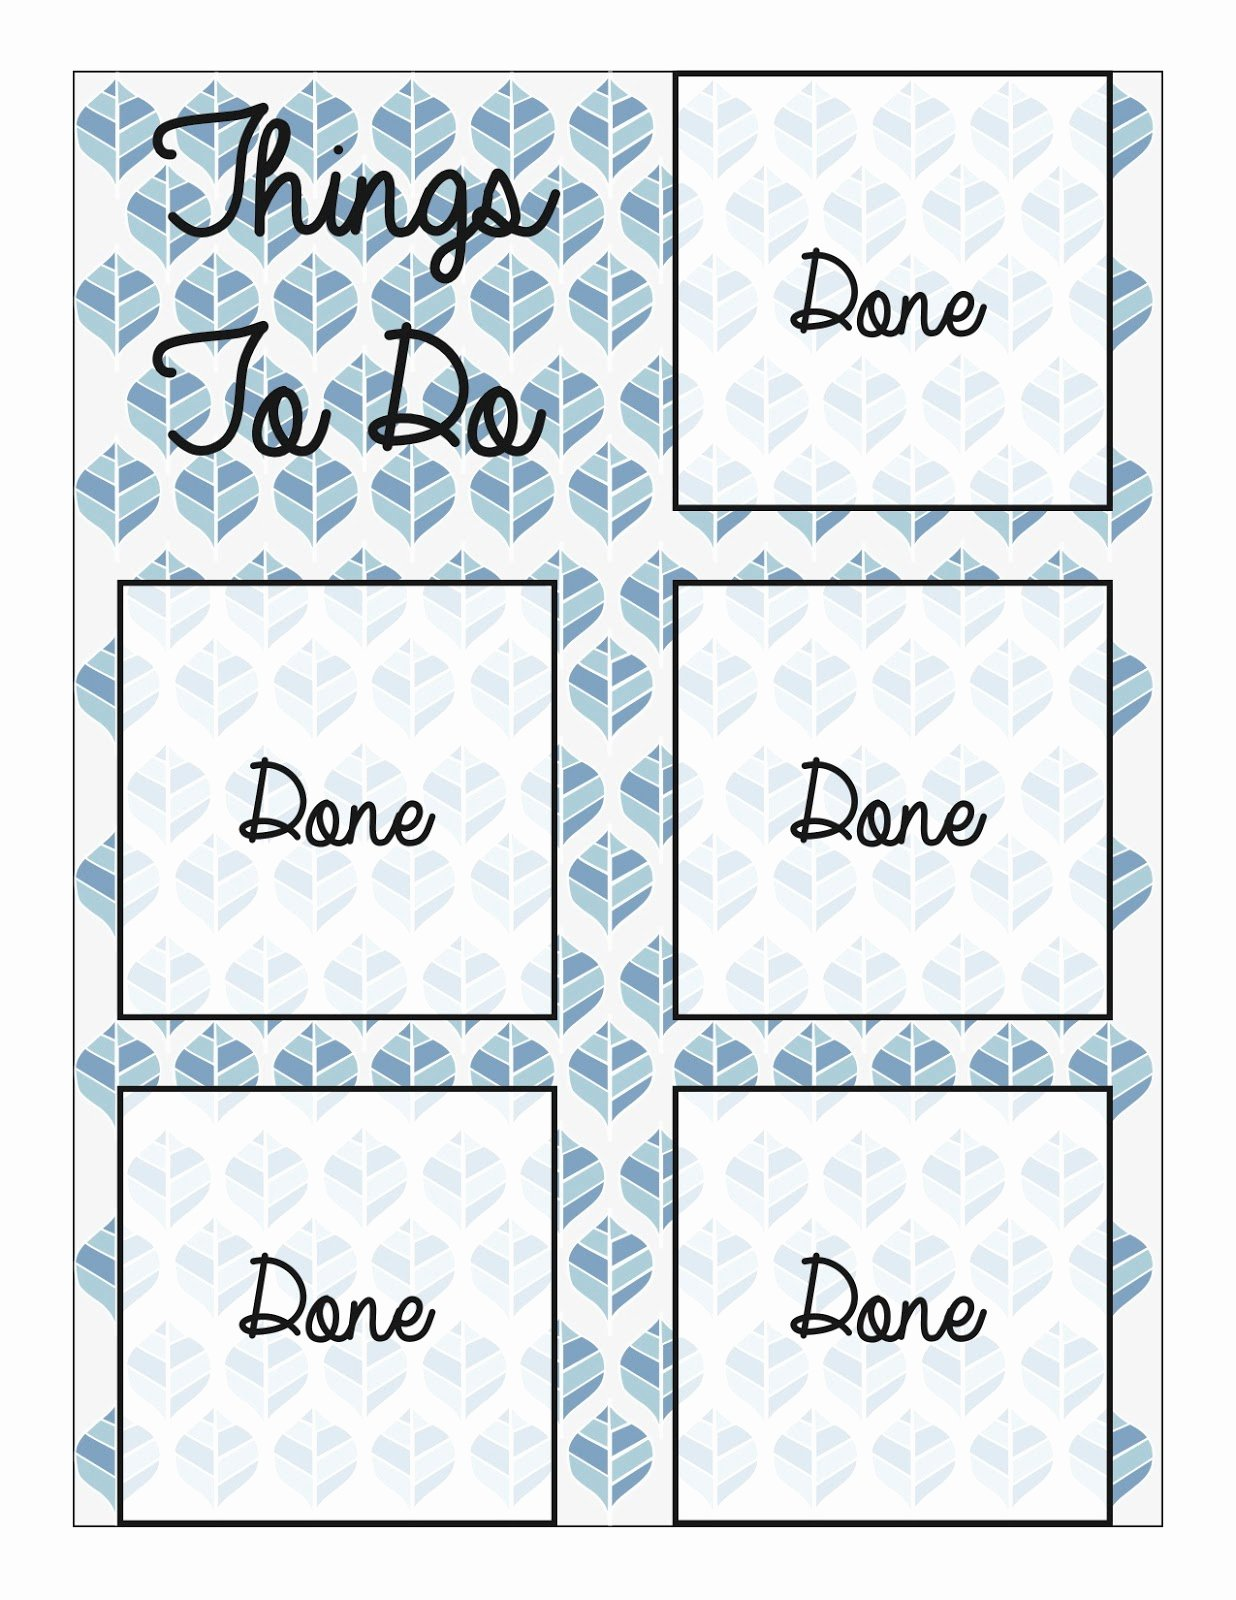 Post It Print Template Unique Crafts and Chaos Washday Wednesday Printable Goal List